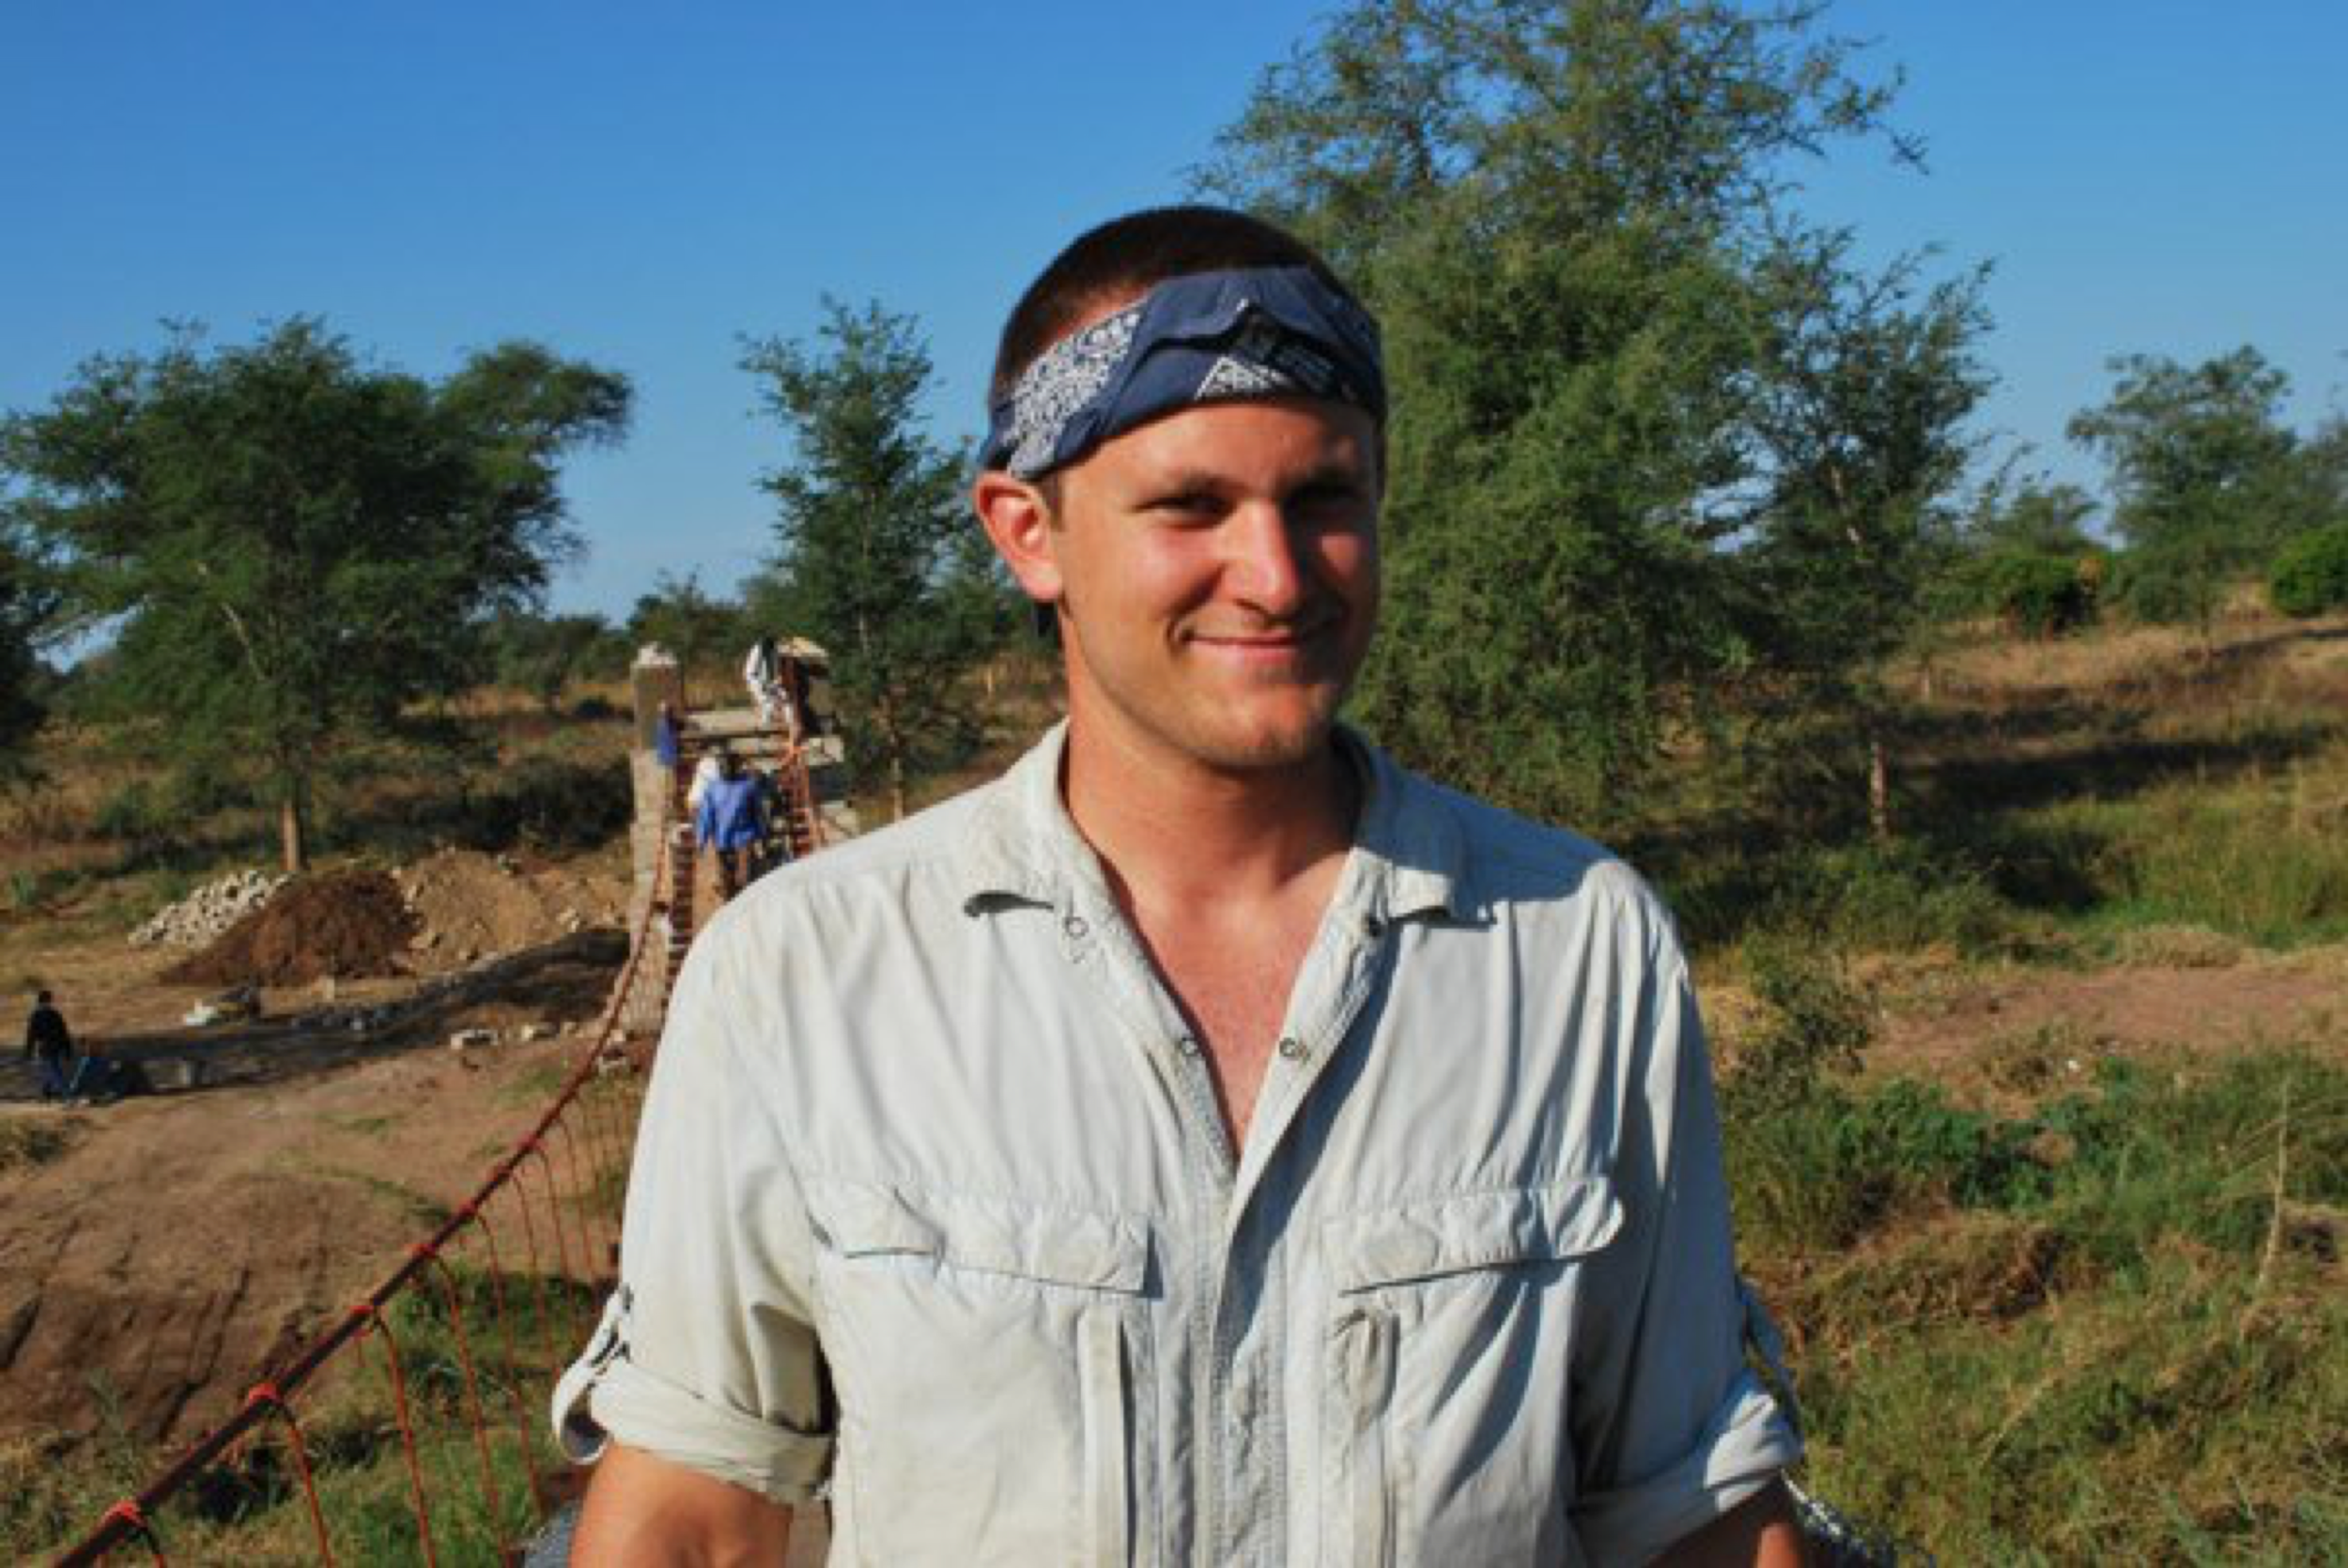 Mike Schaefer - Mike built a footbridge in Zambia and is now a postdoctoral researcher at University of California Riverside.